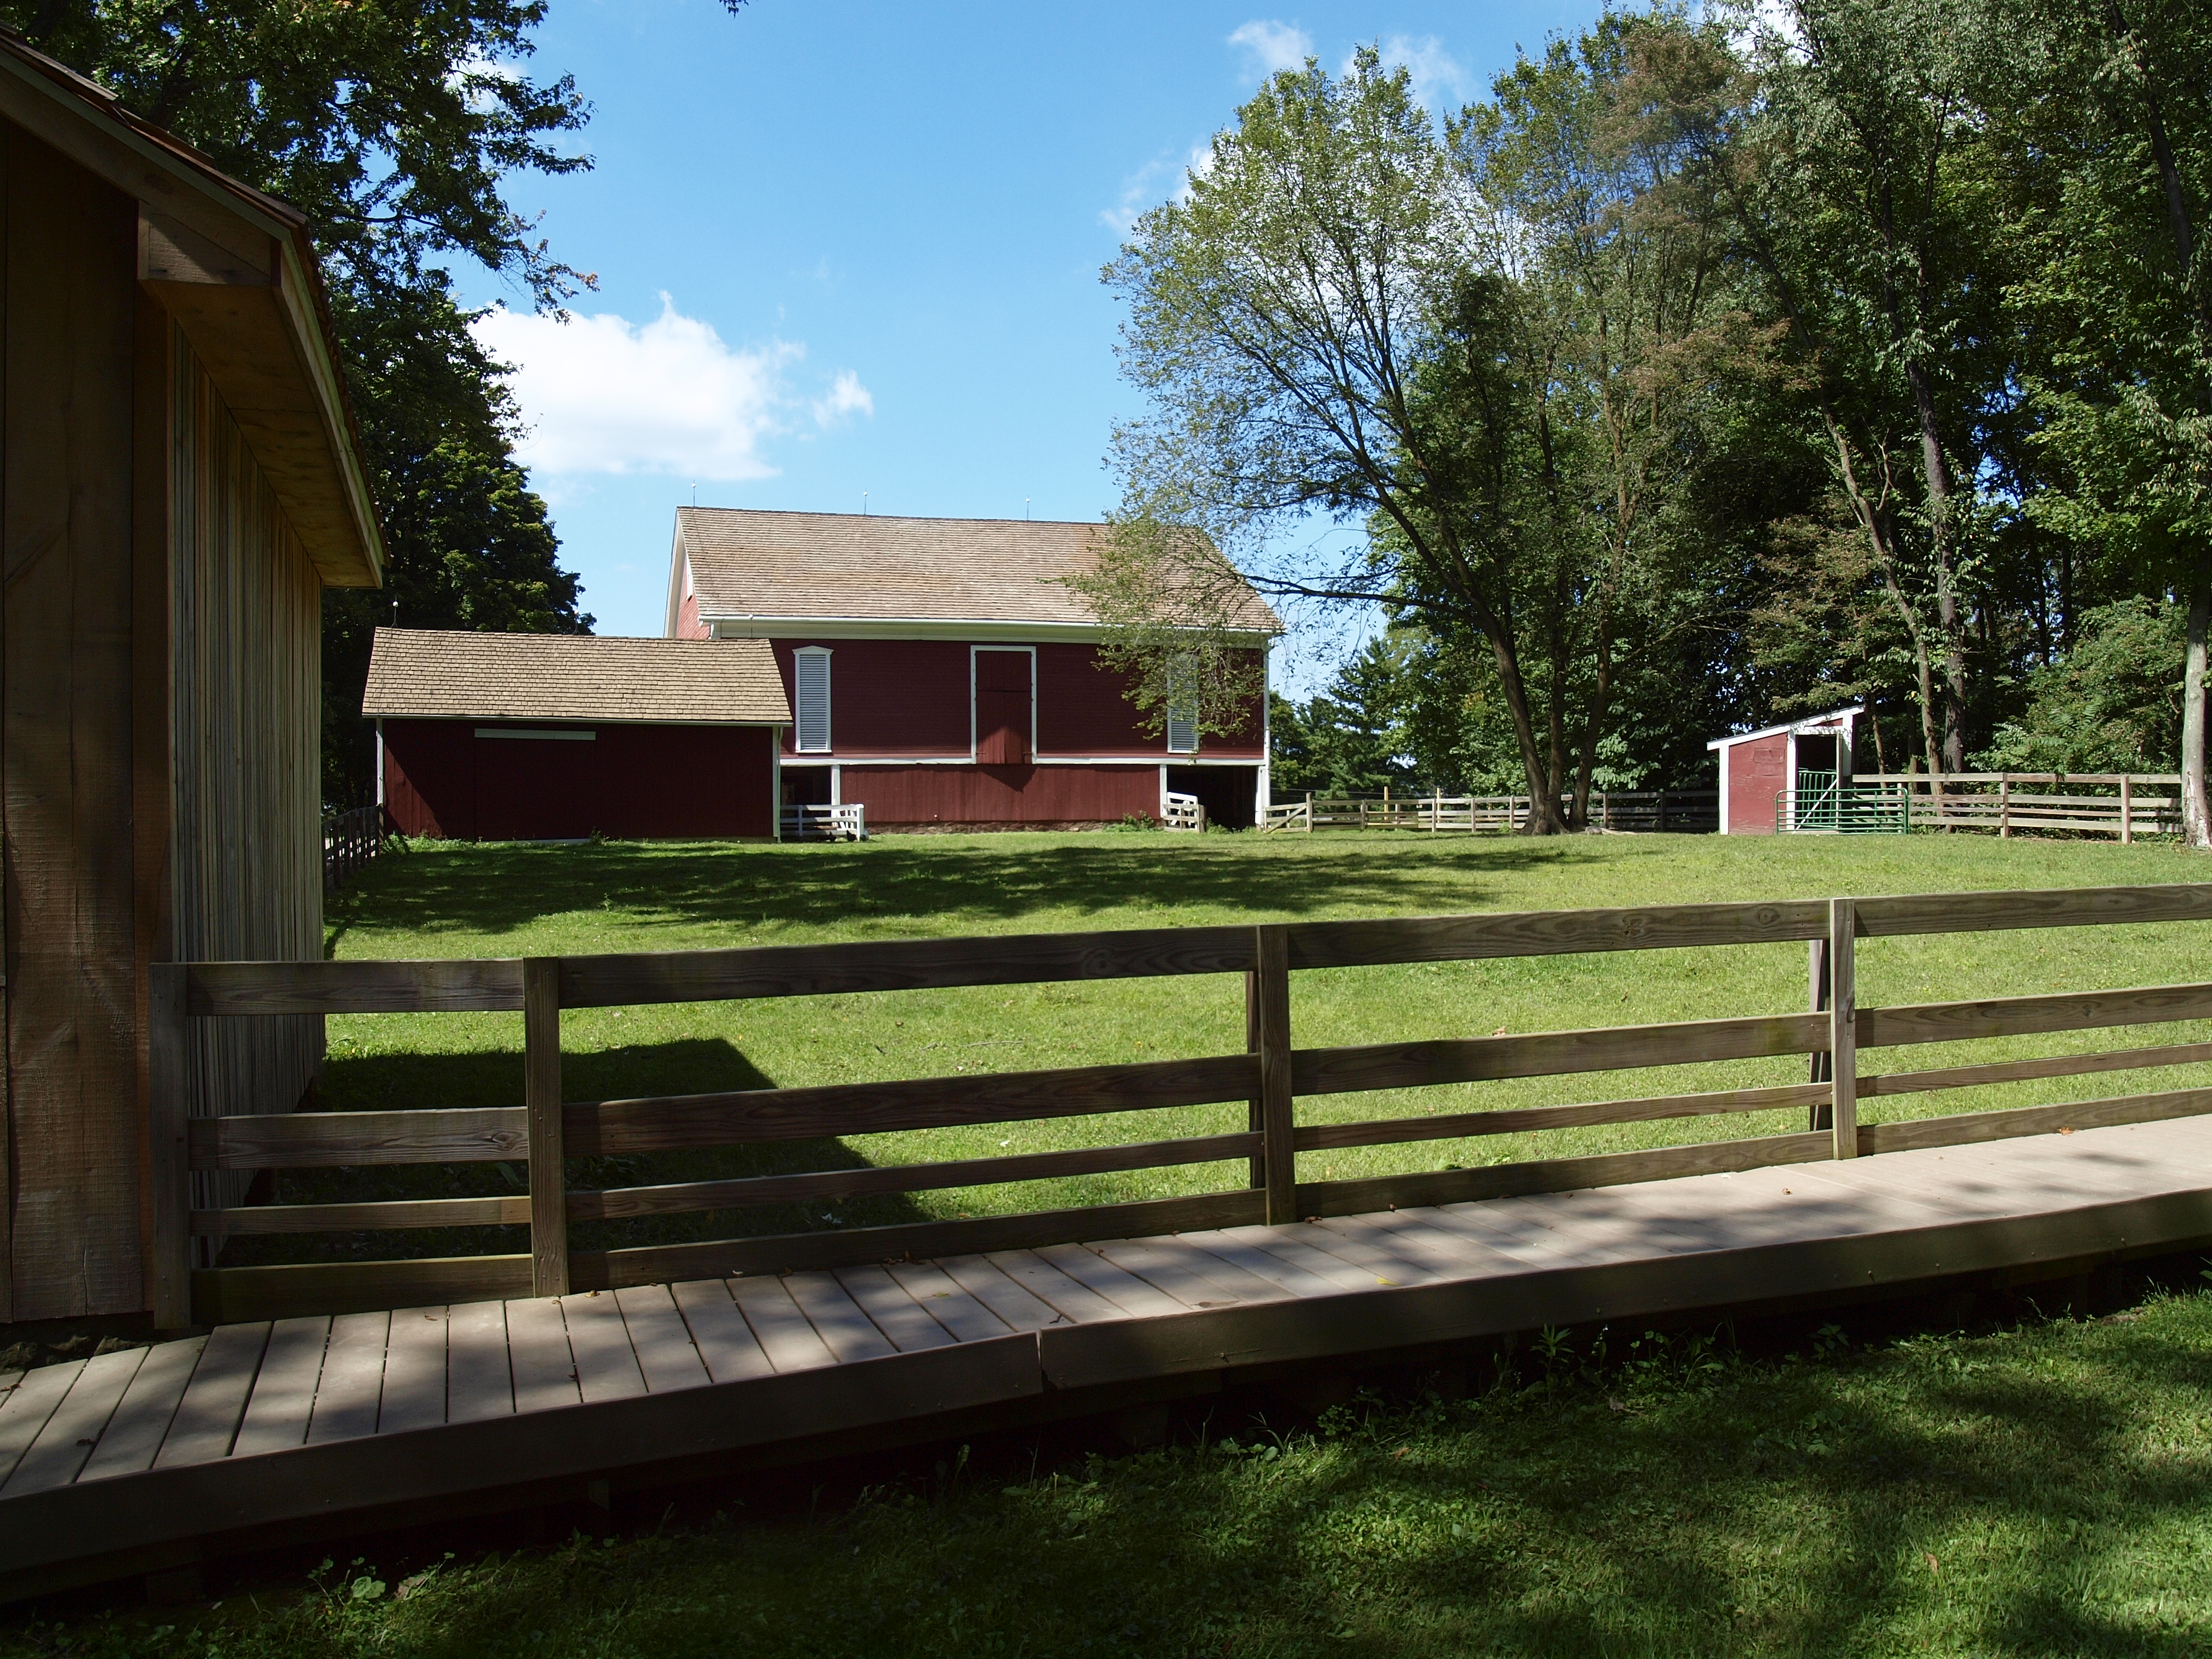 A big red barn sits on the Nature Center property